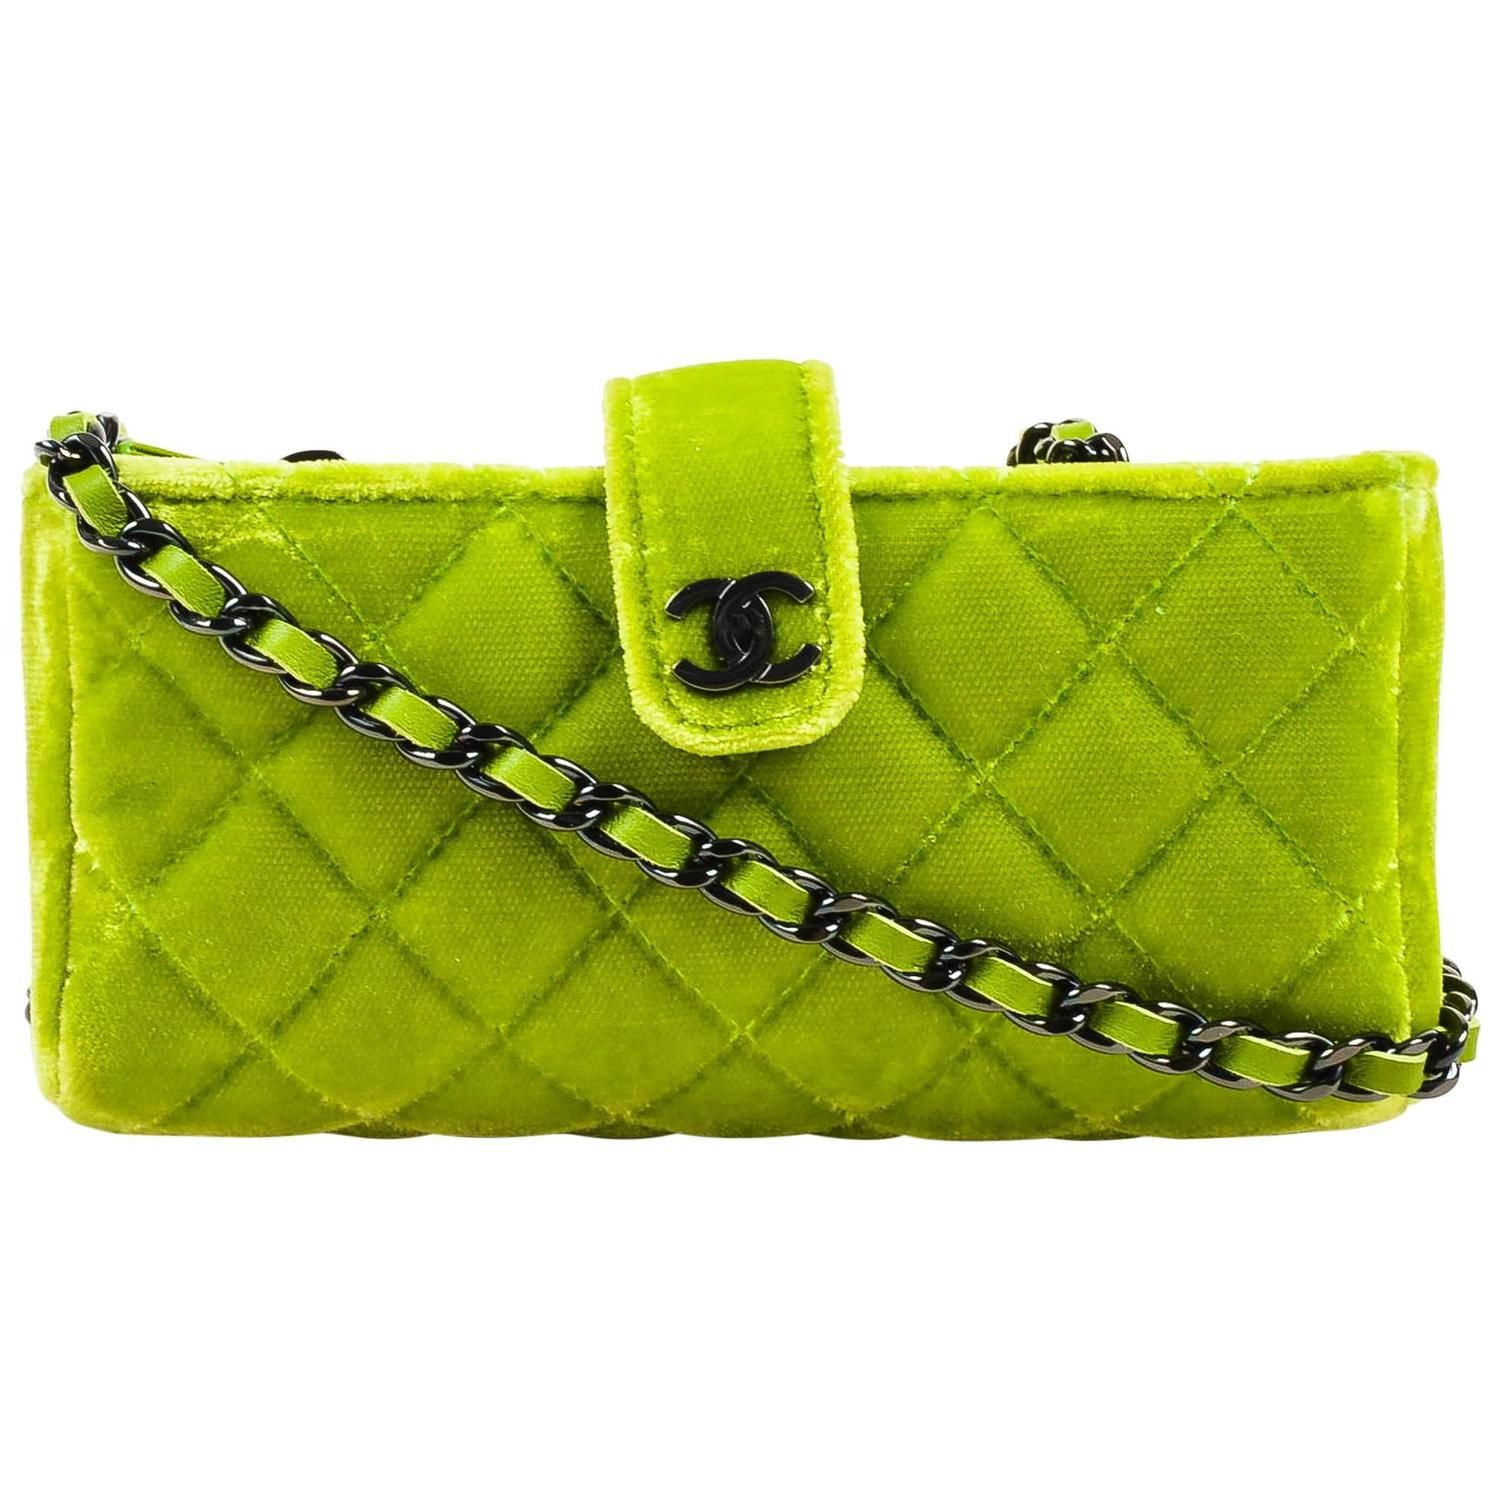 e07f8e334018 Chanel Lime Green Quilted Velvet Chain Link Shoulder Strap Small Clutch Bag